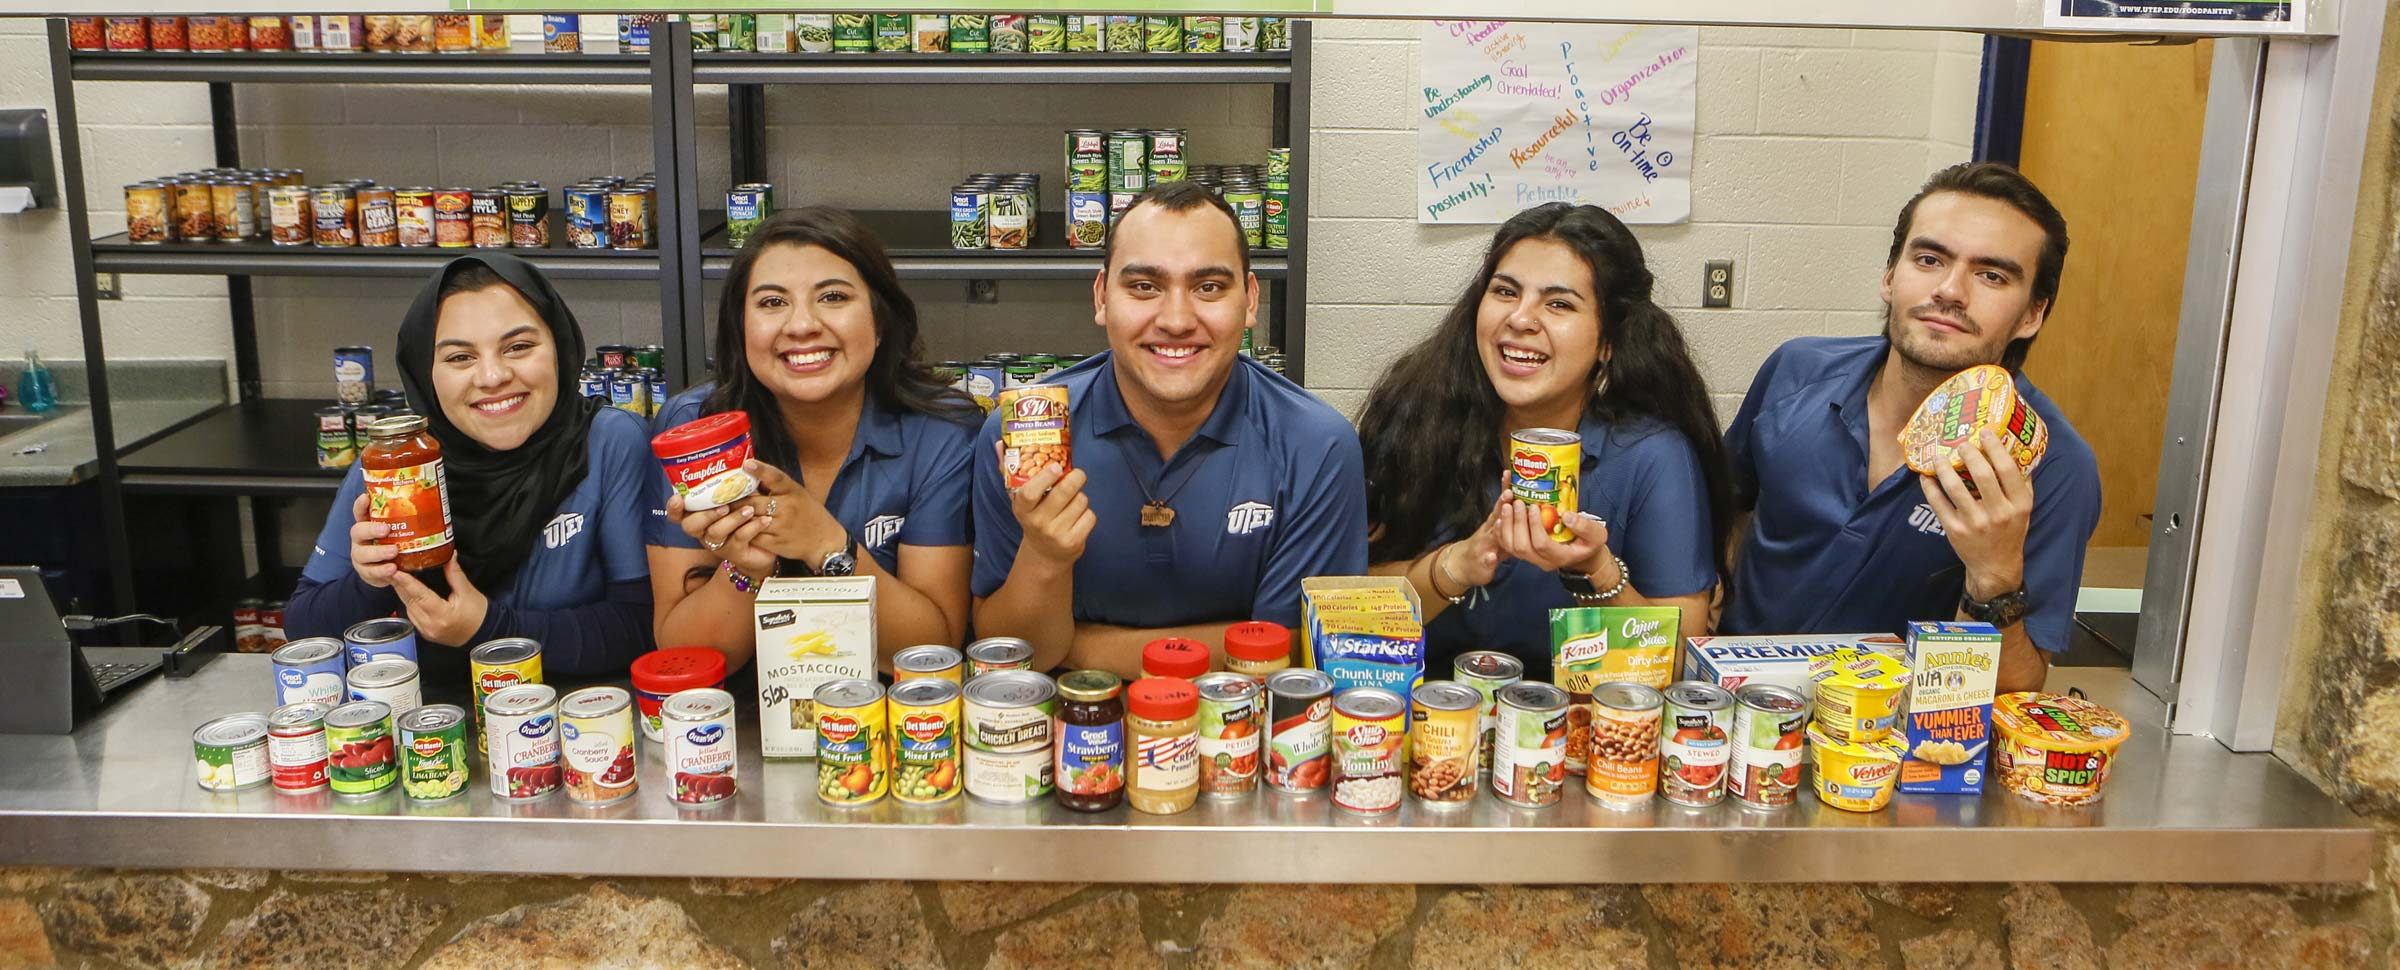 UTEP Students Can Find Comfort at Food Pantry